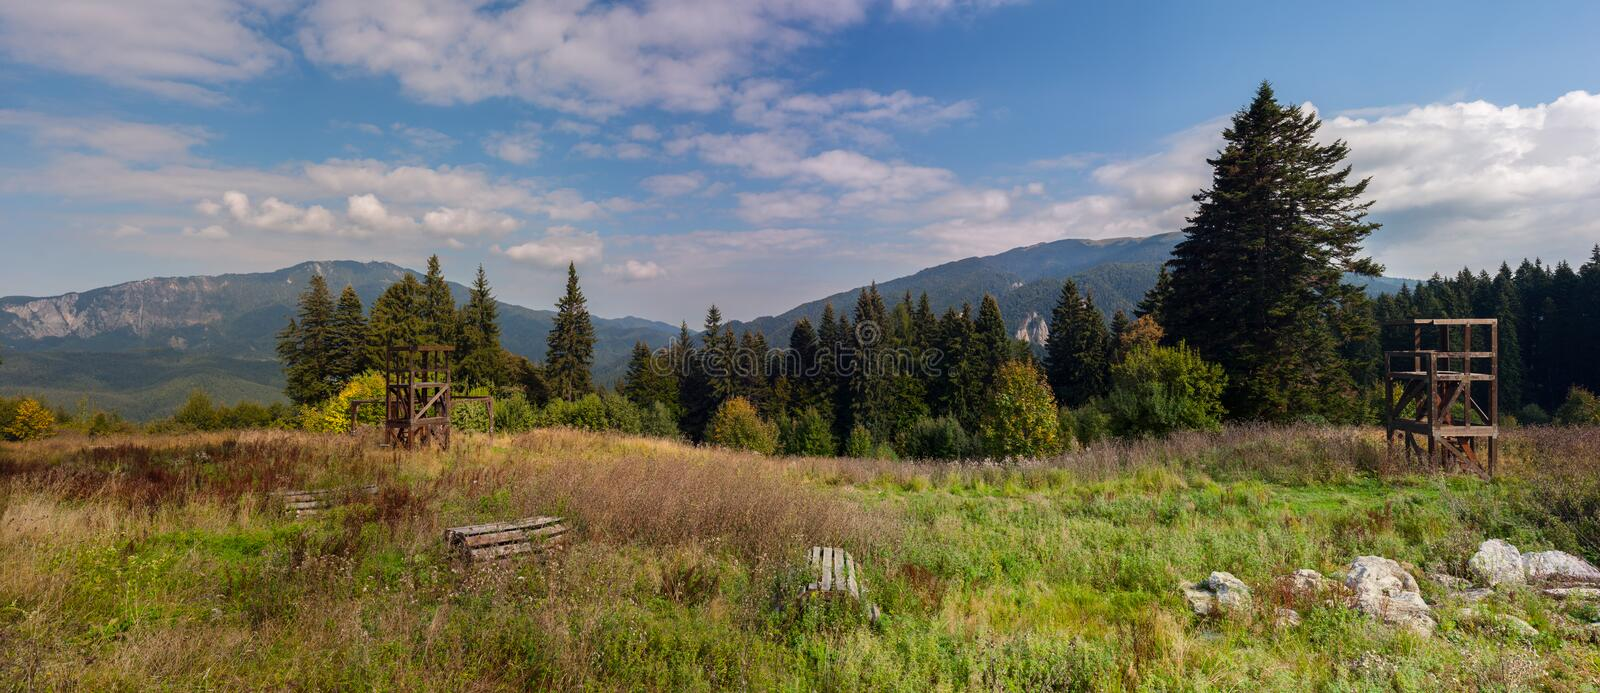 Mountain peaks in bright sunlight. Wooden constructions for training on a meadow royalty free stock images